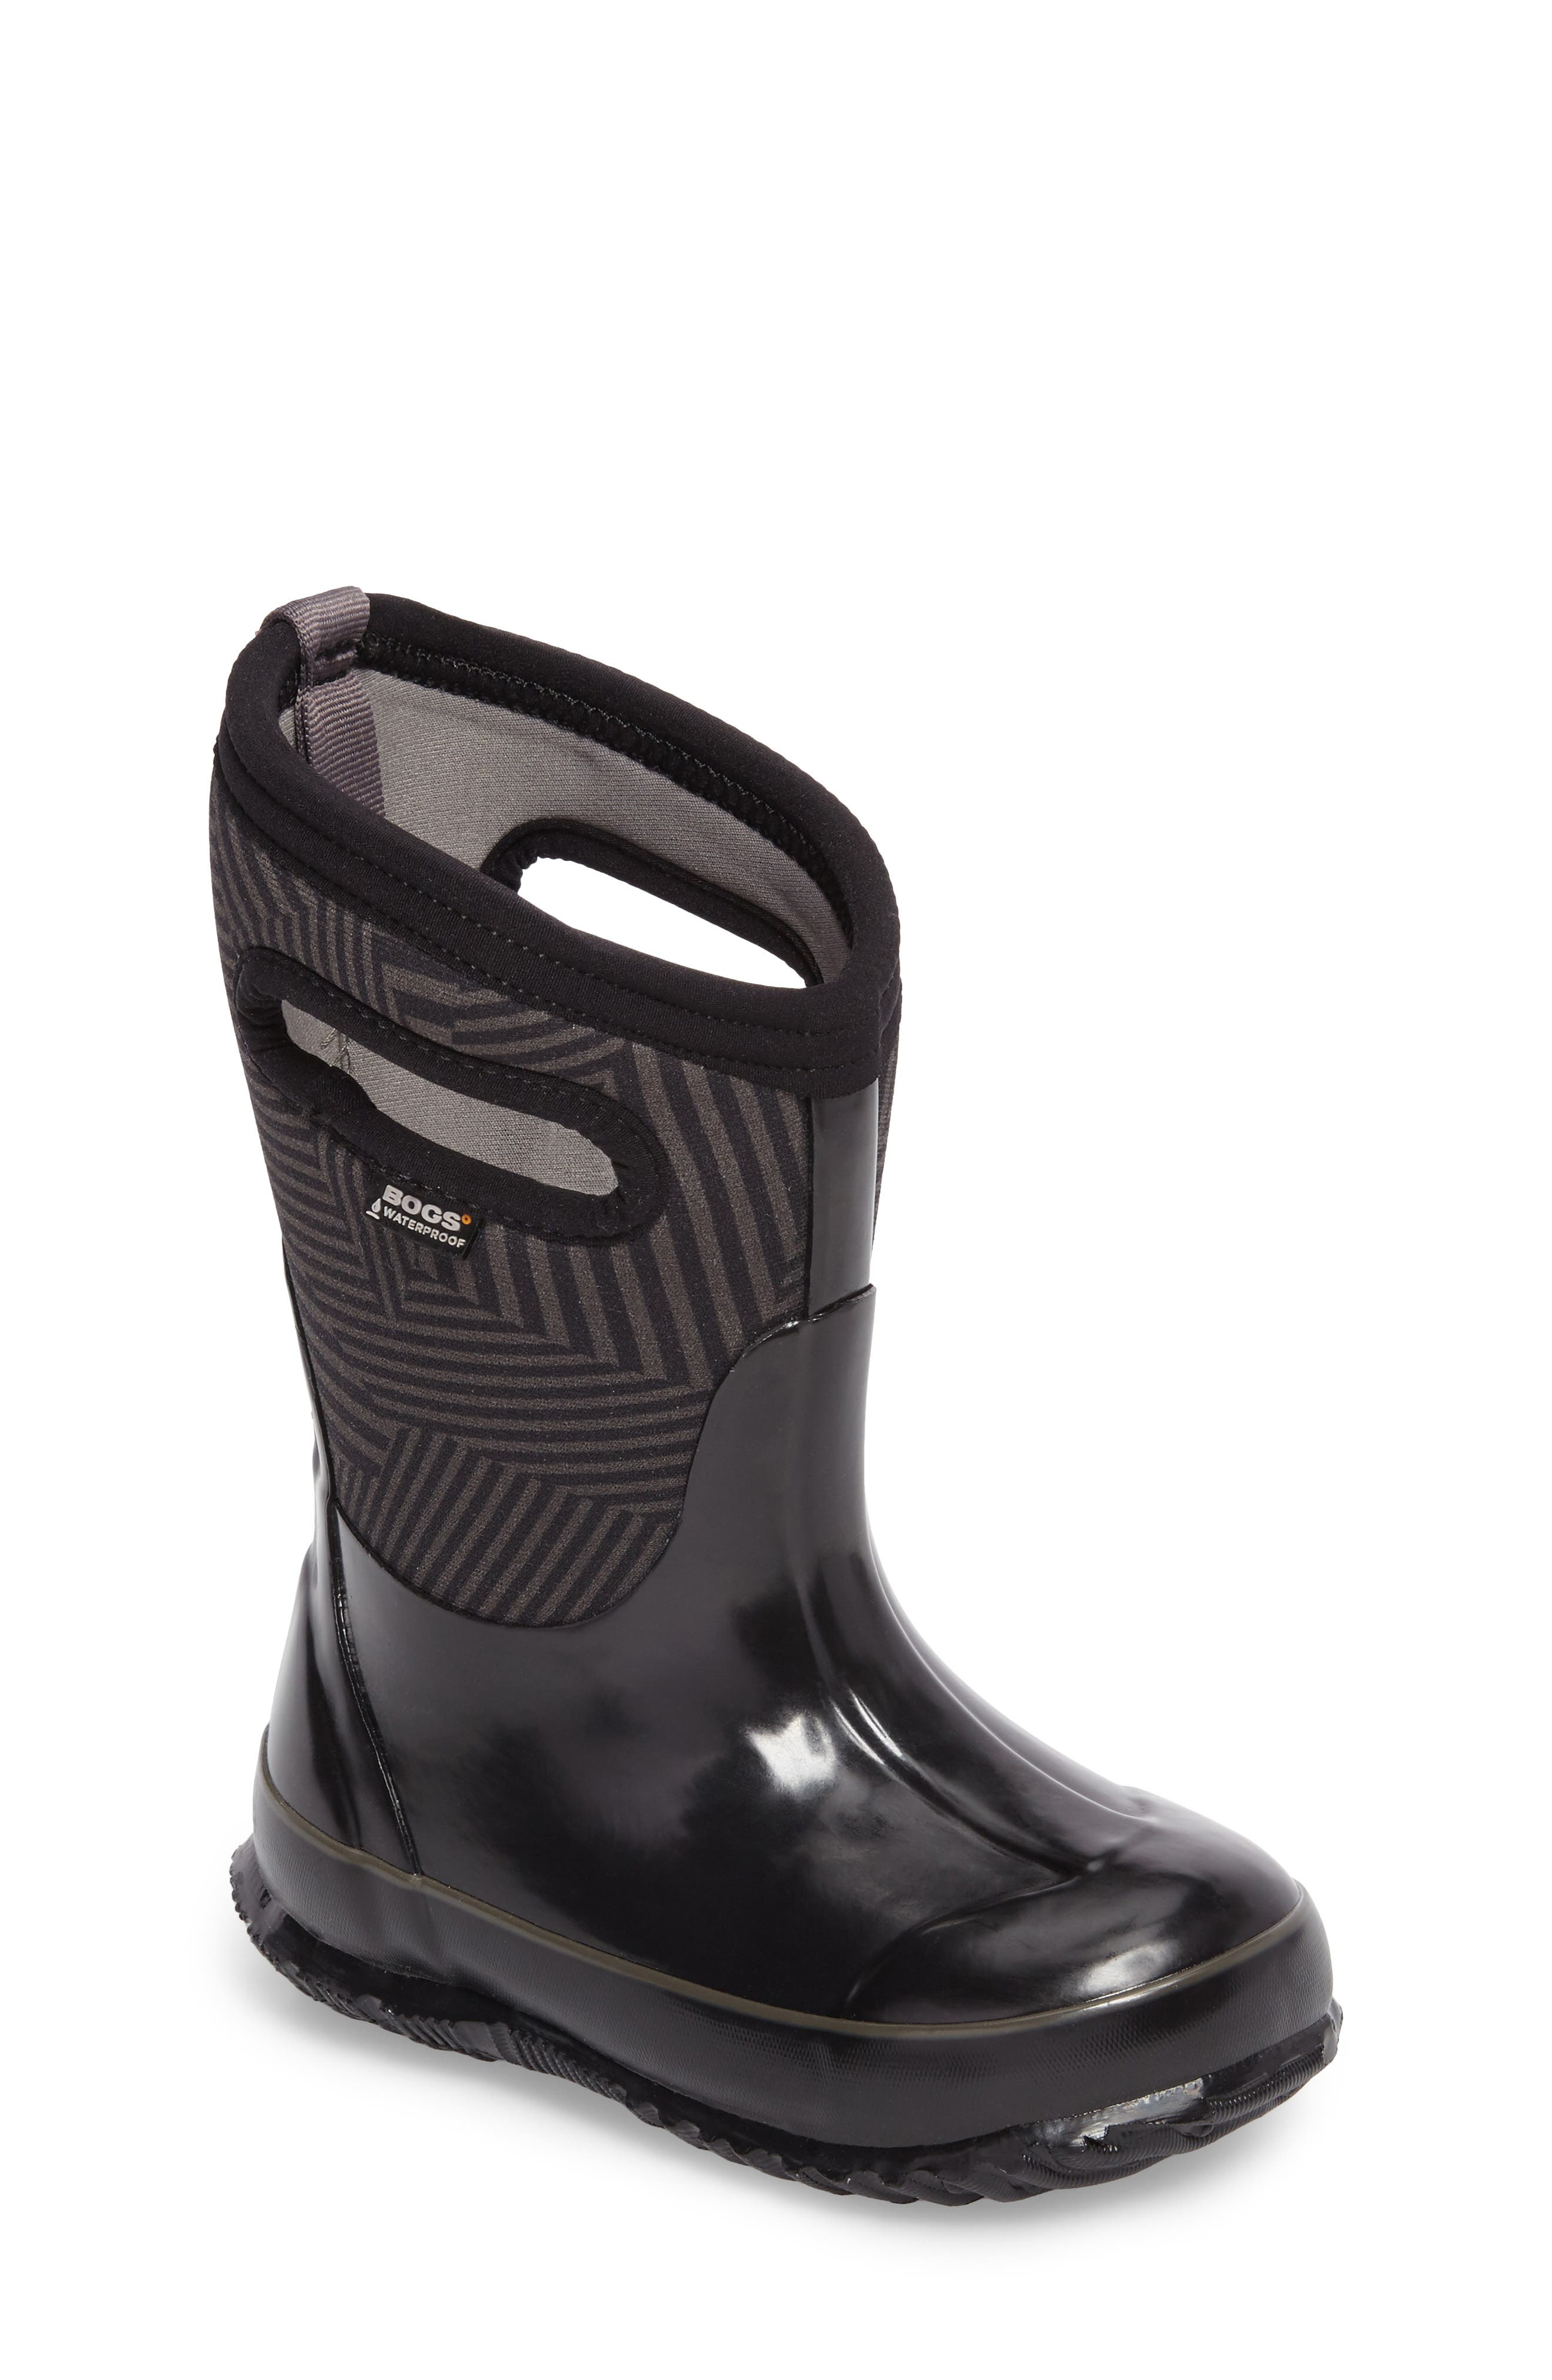 Classic Phaser Insulated Waterproof Boot,                             Main thumbnail 1, color,                             Black Multi